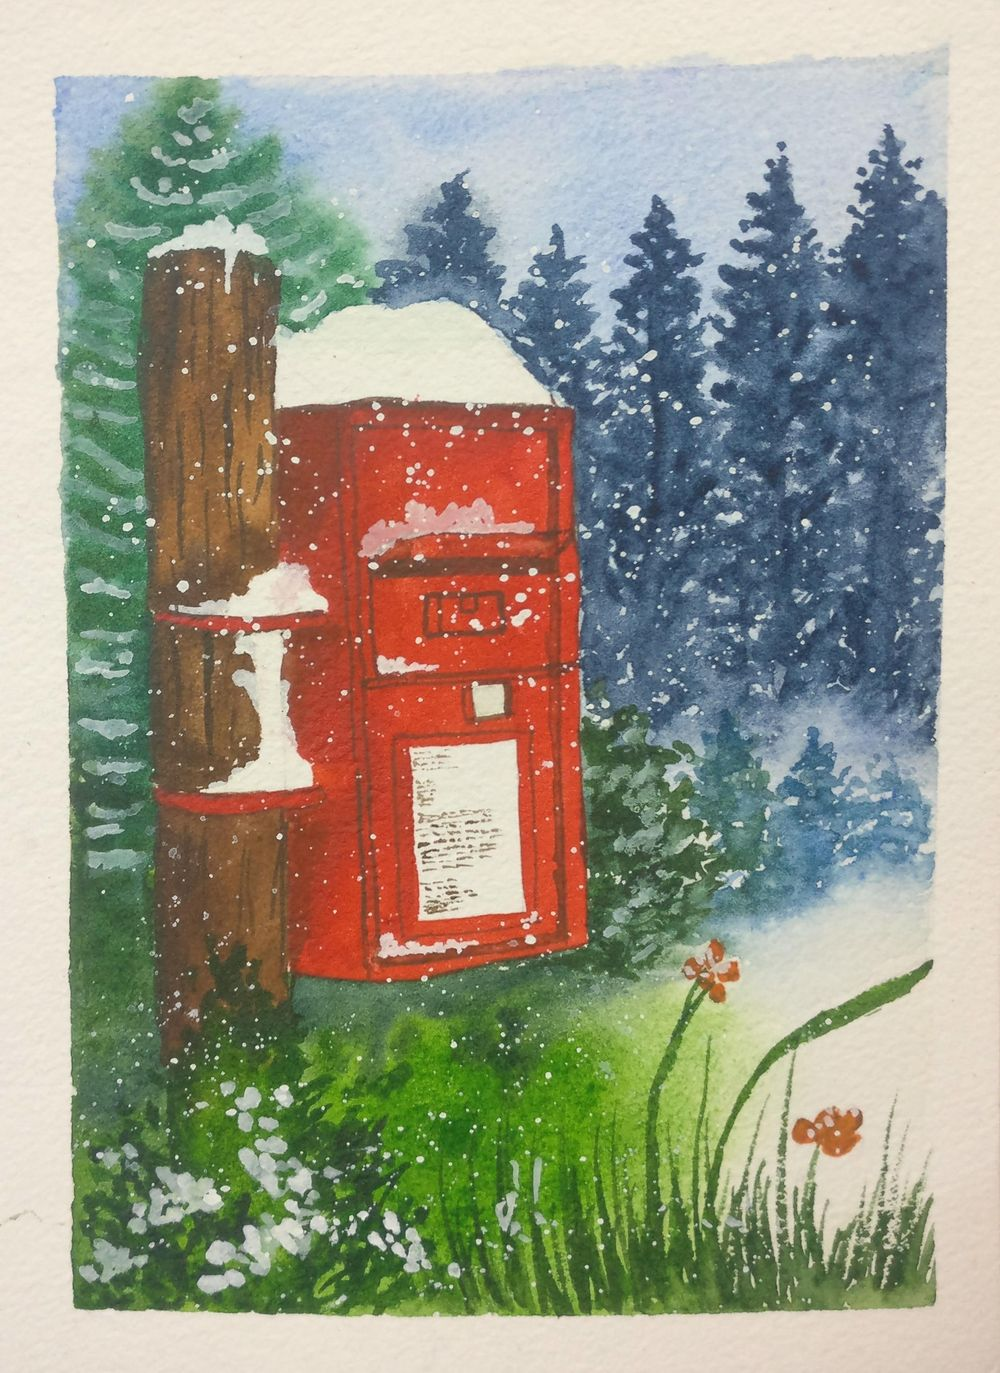 Christmas with watercolors - image 13 - student project